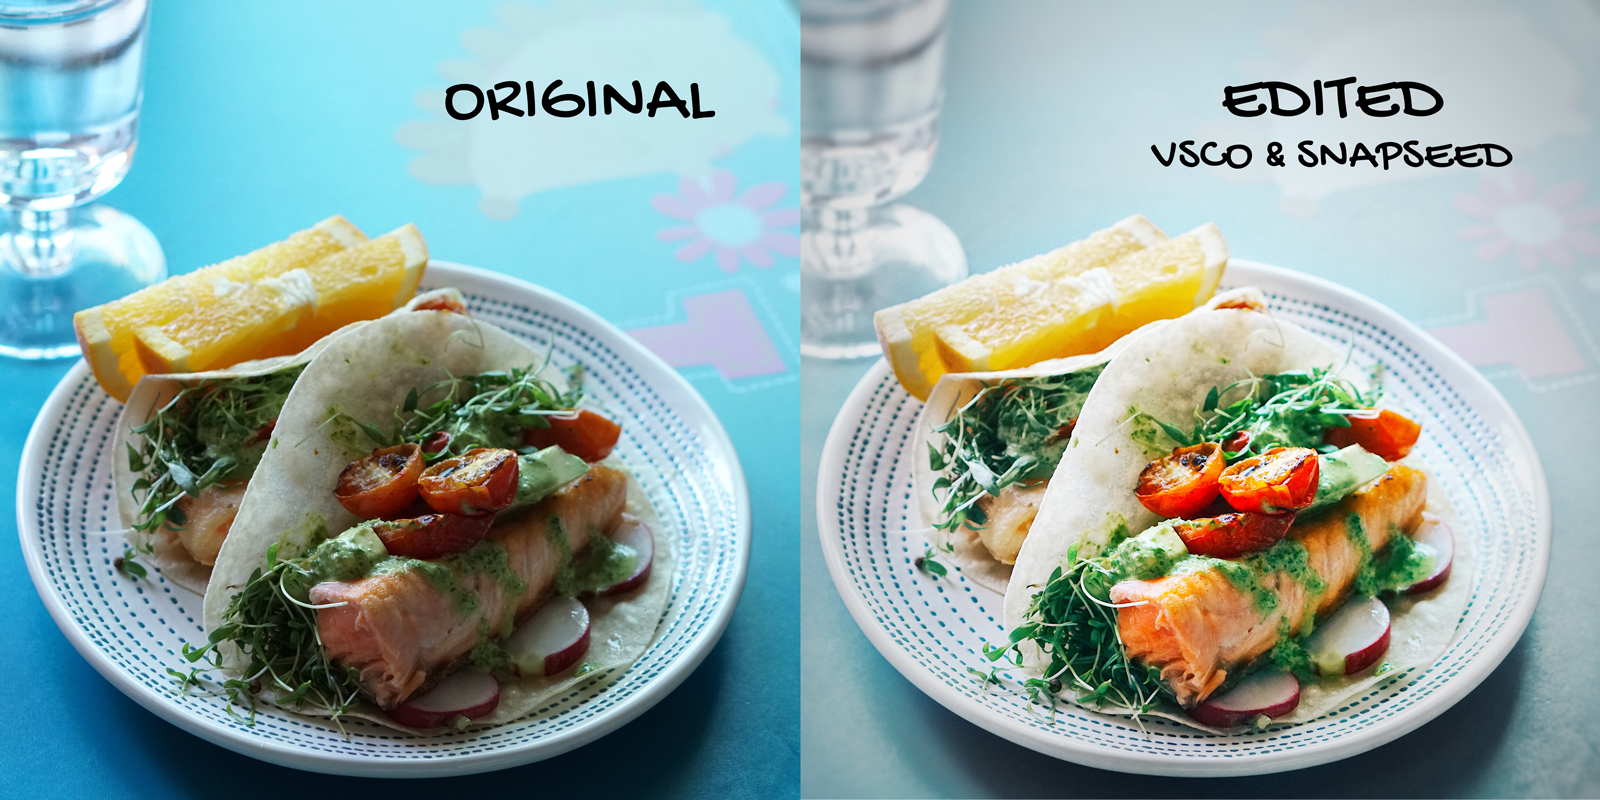 How to edit food photos on your phone, it's easy - White Blank Space